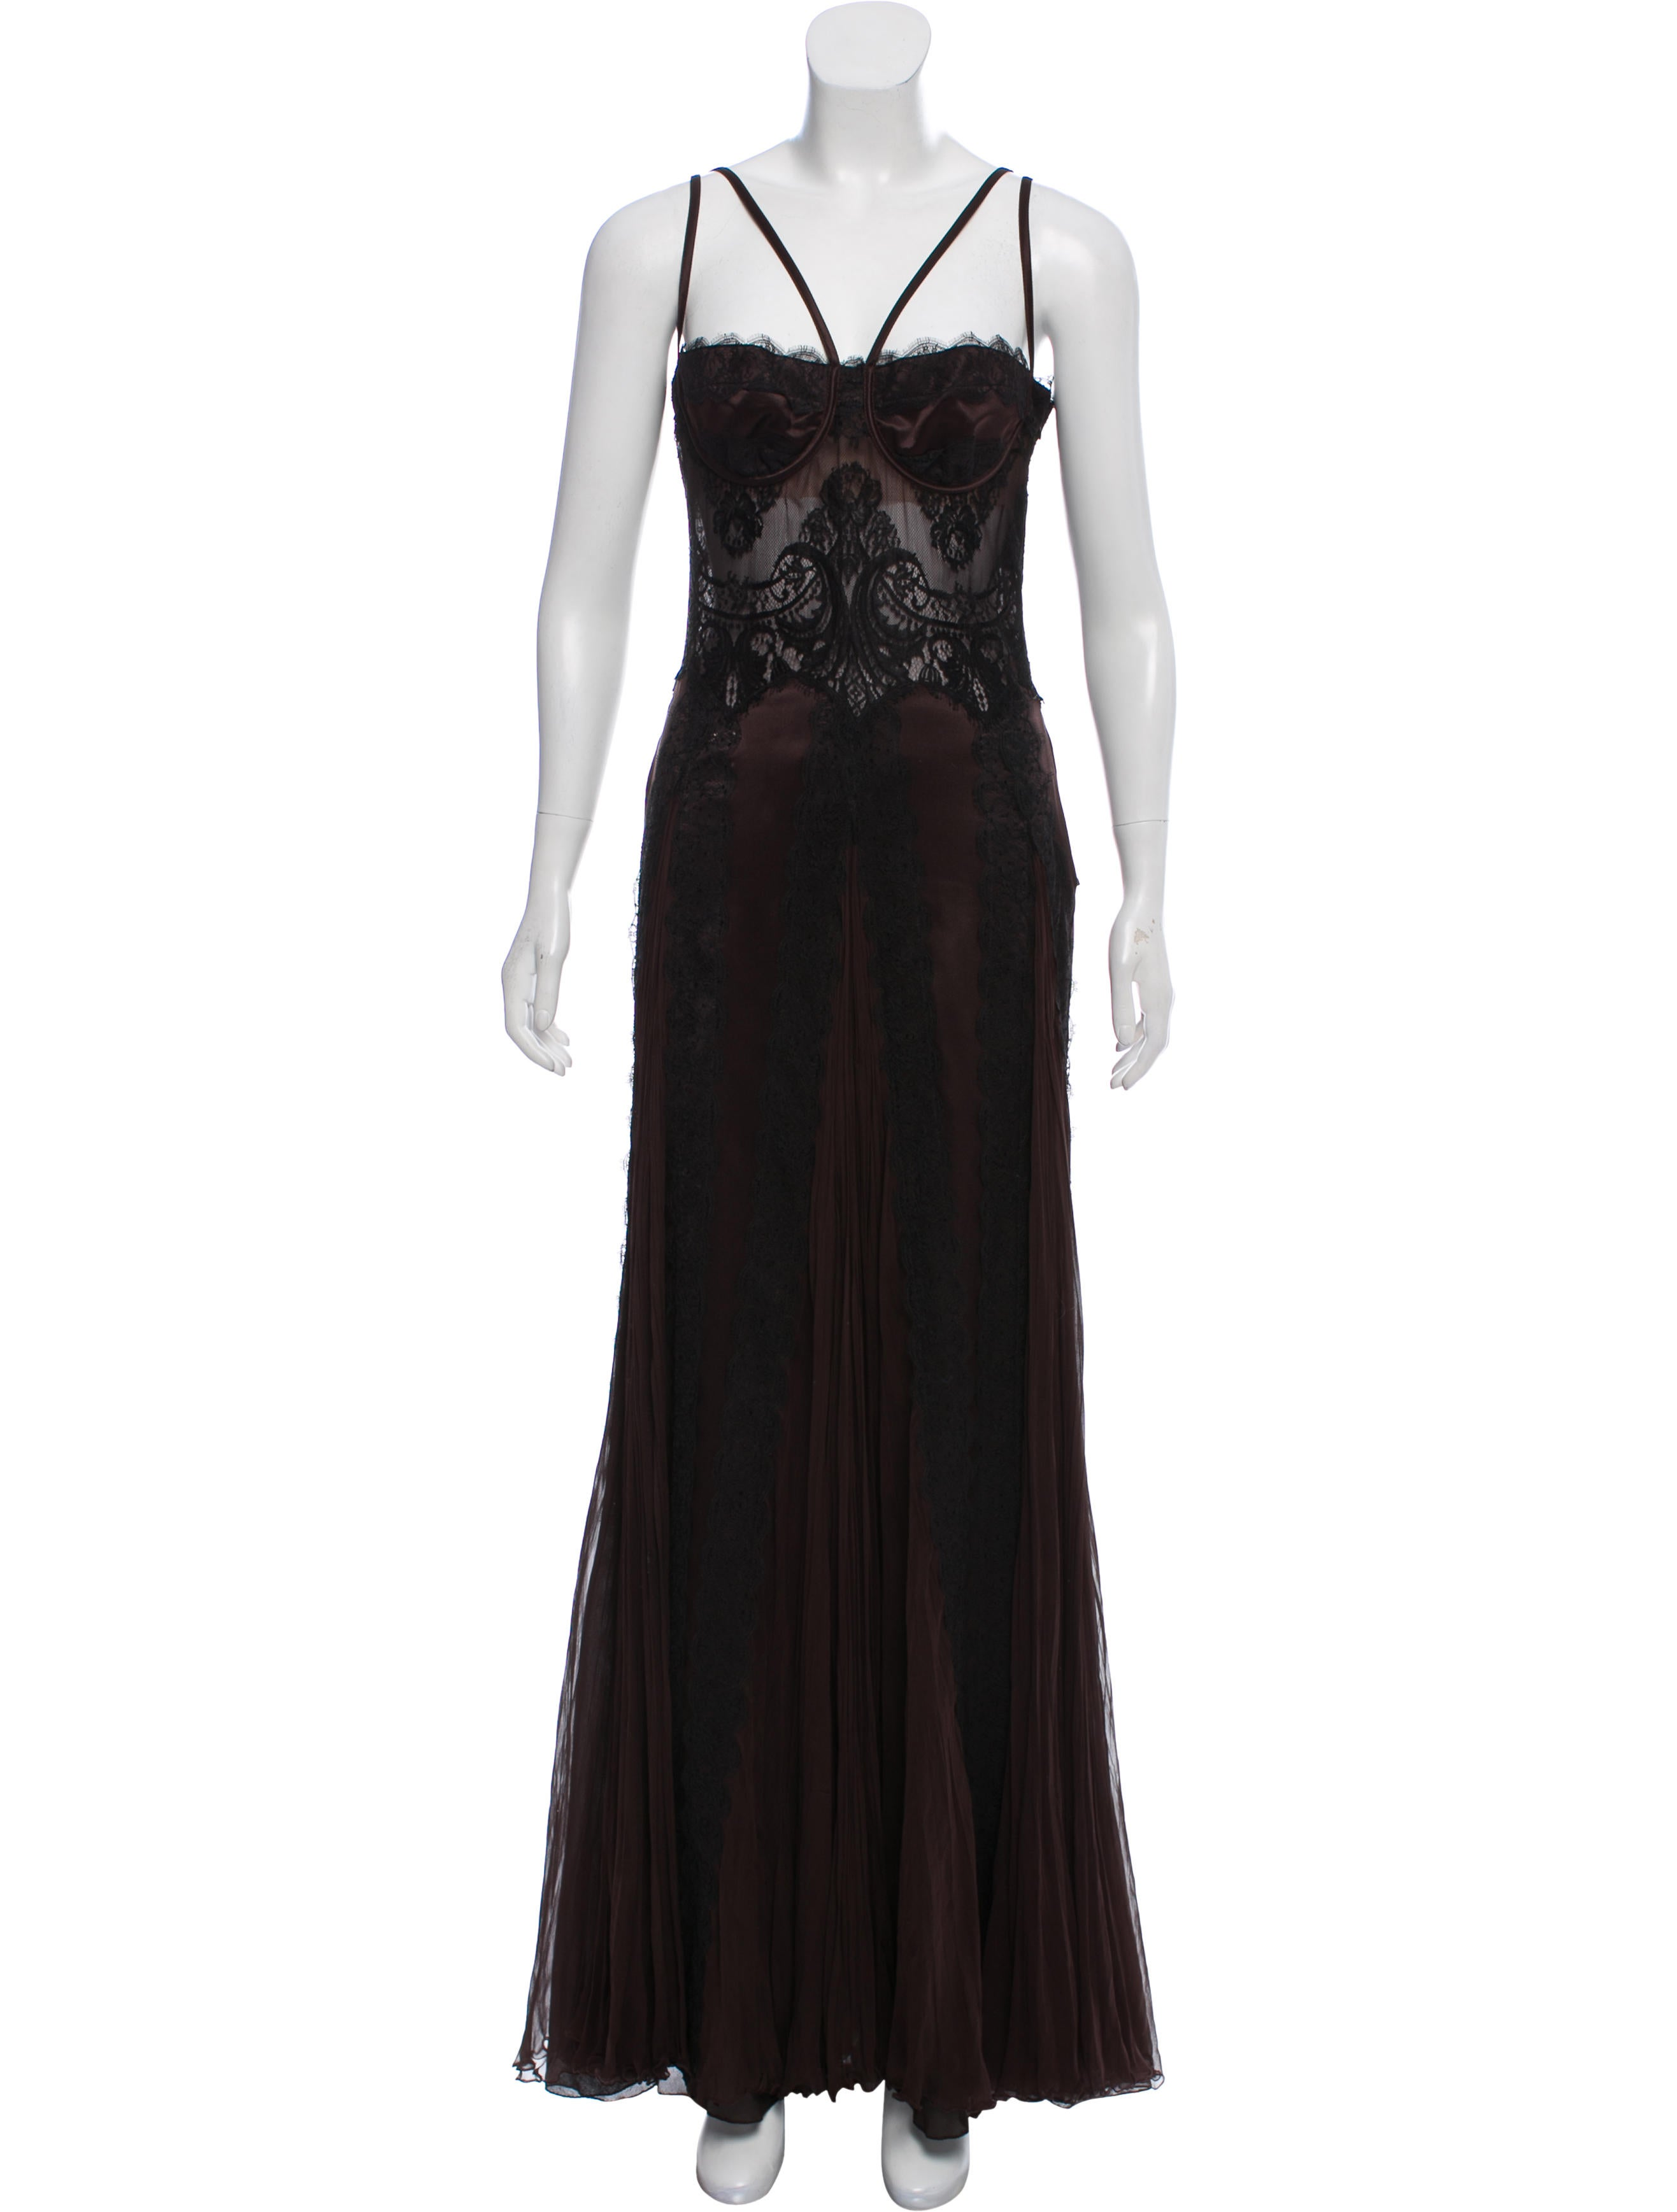 Versace Silk Evening Dress - Clothing - VES34685   The RealReal